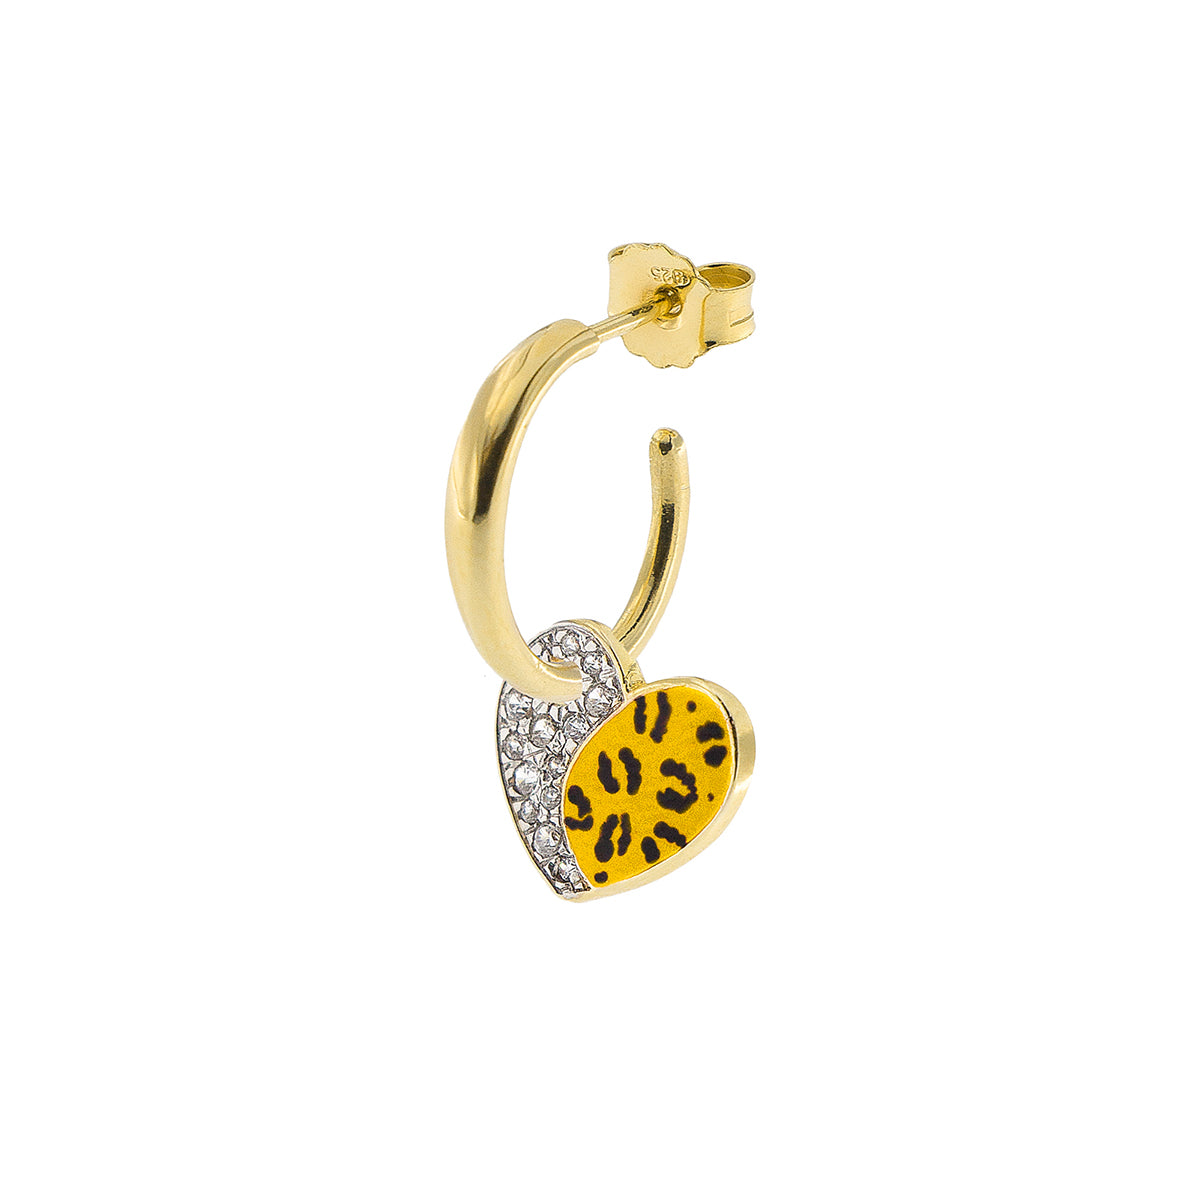 Earrings - Single Earring With Small Hoop and Heart - Leopard Print - 3 | Rue des Mille